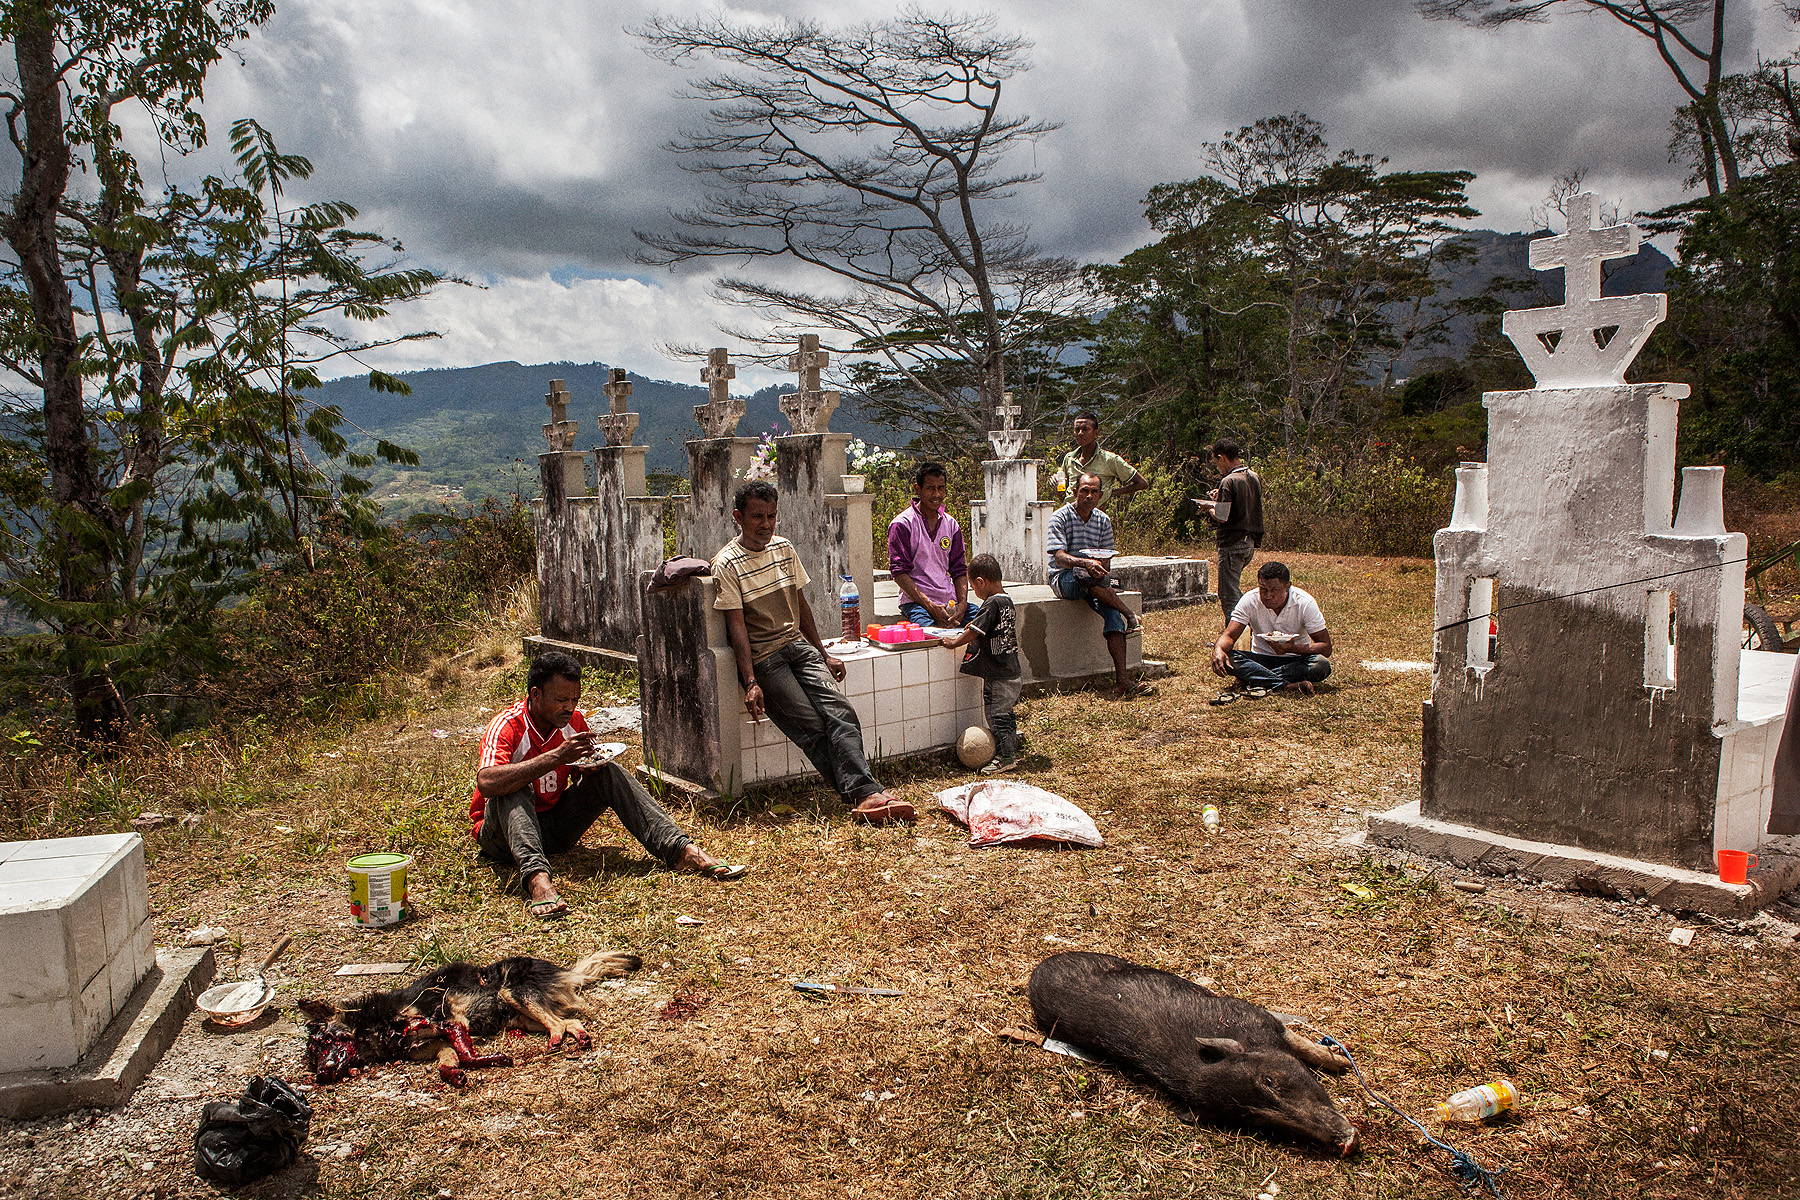 Local villagers in Atsabe wait for a ceremony to start and have their lunch after sacrificing a dog and a pig - East Timor is predominately catholic but elements of animism are incorporated into the religion